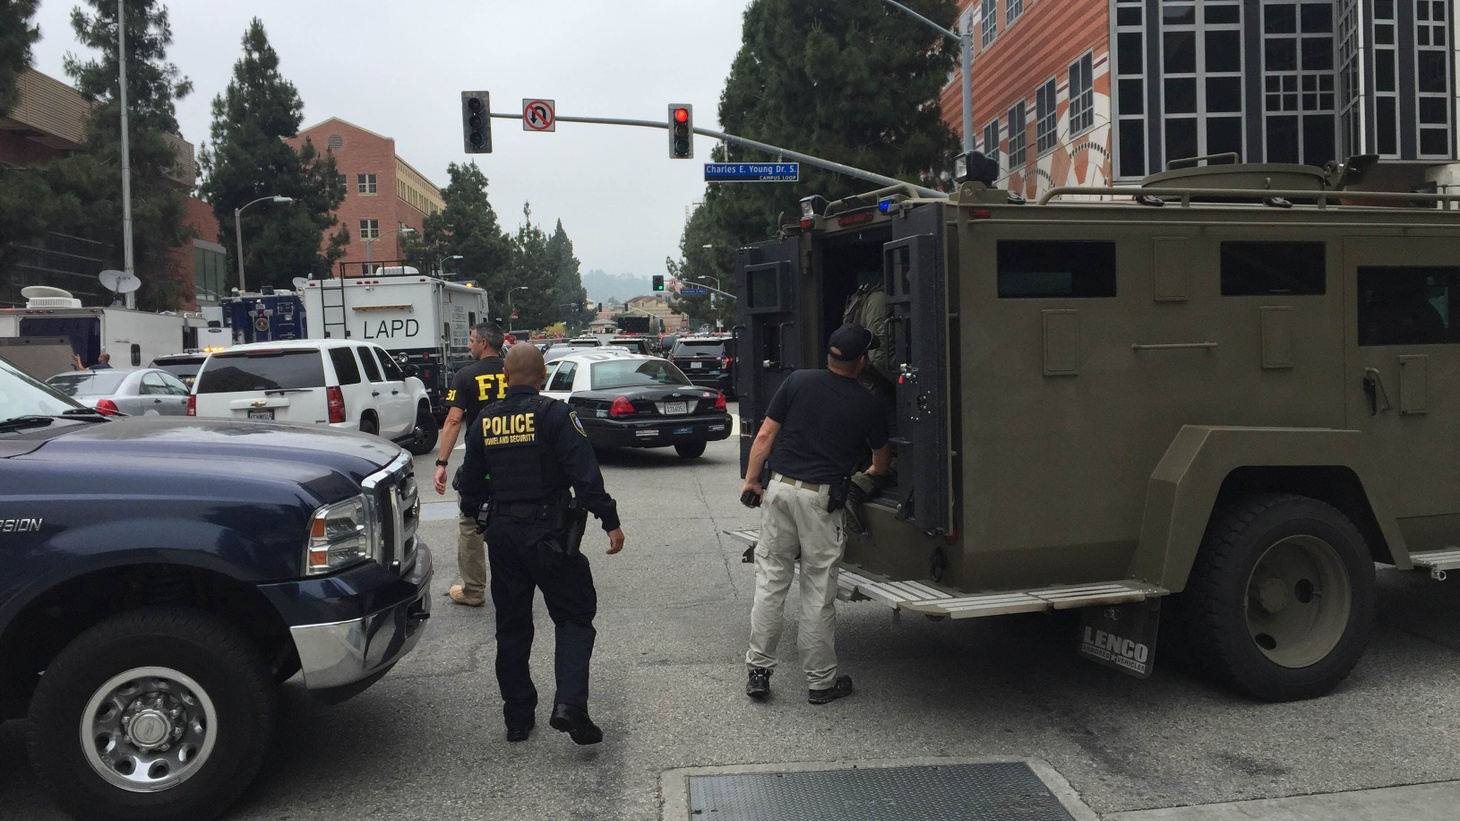 Two men are dead in a  suspected murder-suicide  after a shooting at UCLA Wednesday morning which led to a campus lockdown. KCRW reporter Saul Gonzalez joined Press Play from the University campus with the latest.     Police outside of UCLA's campus on June 1st, 2016 Credit: Saul Gonzalez